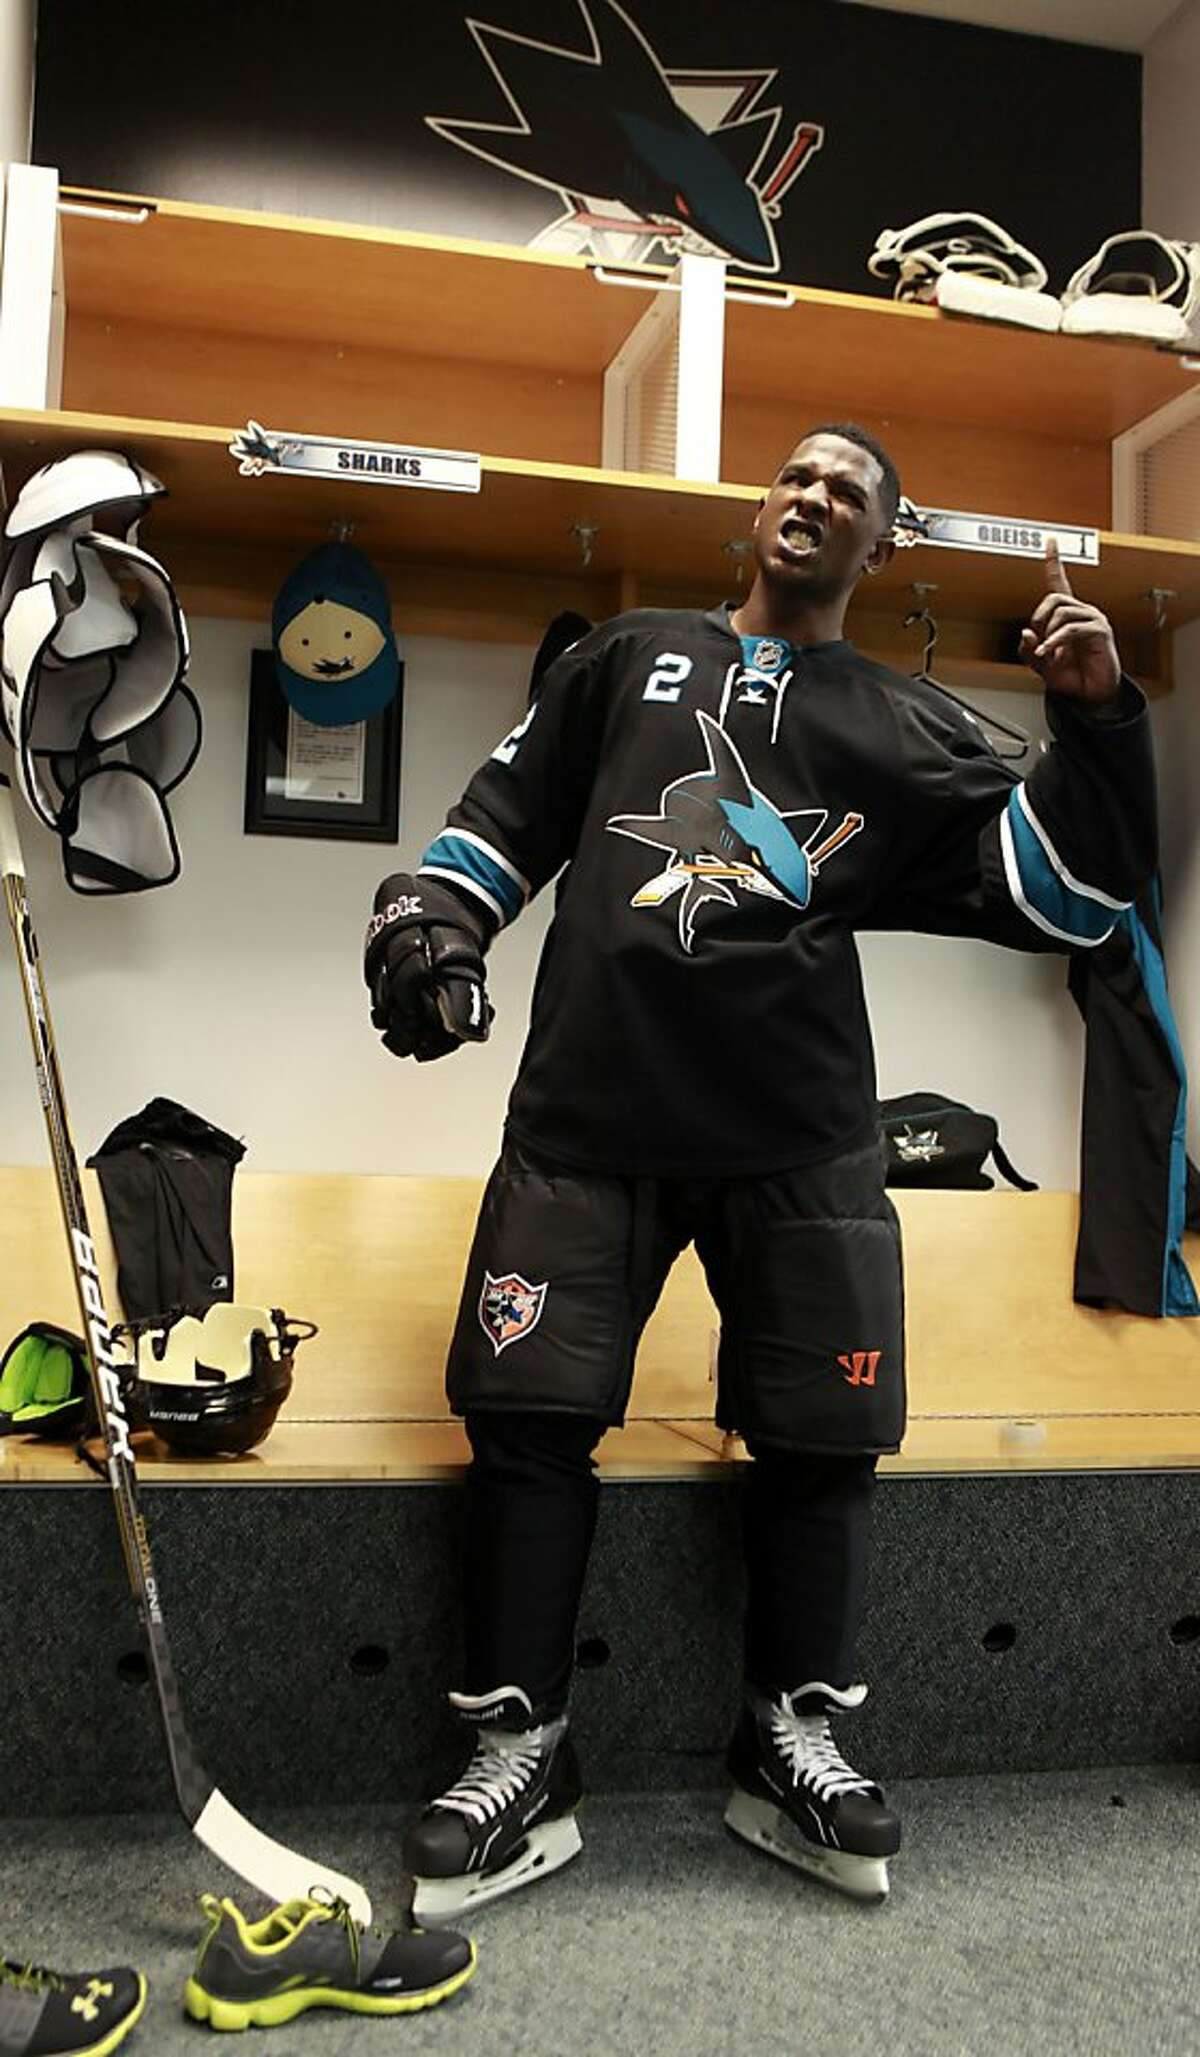 Milwaukee Brewers outfielder Nyjer Morgan suits up Wednesday, February 1, 2012. Morgan lived a dream when he skated with the San Jose Sharks on their practice ice in San Jose.